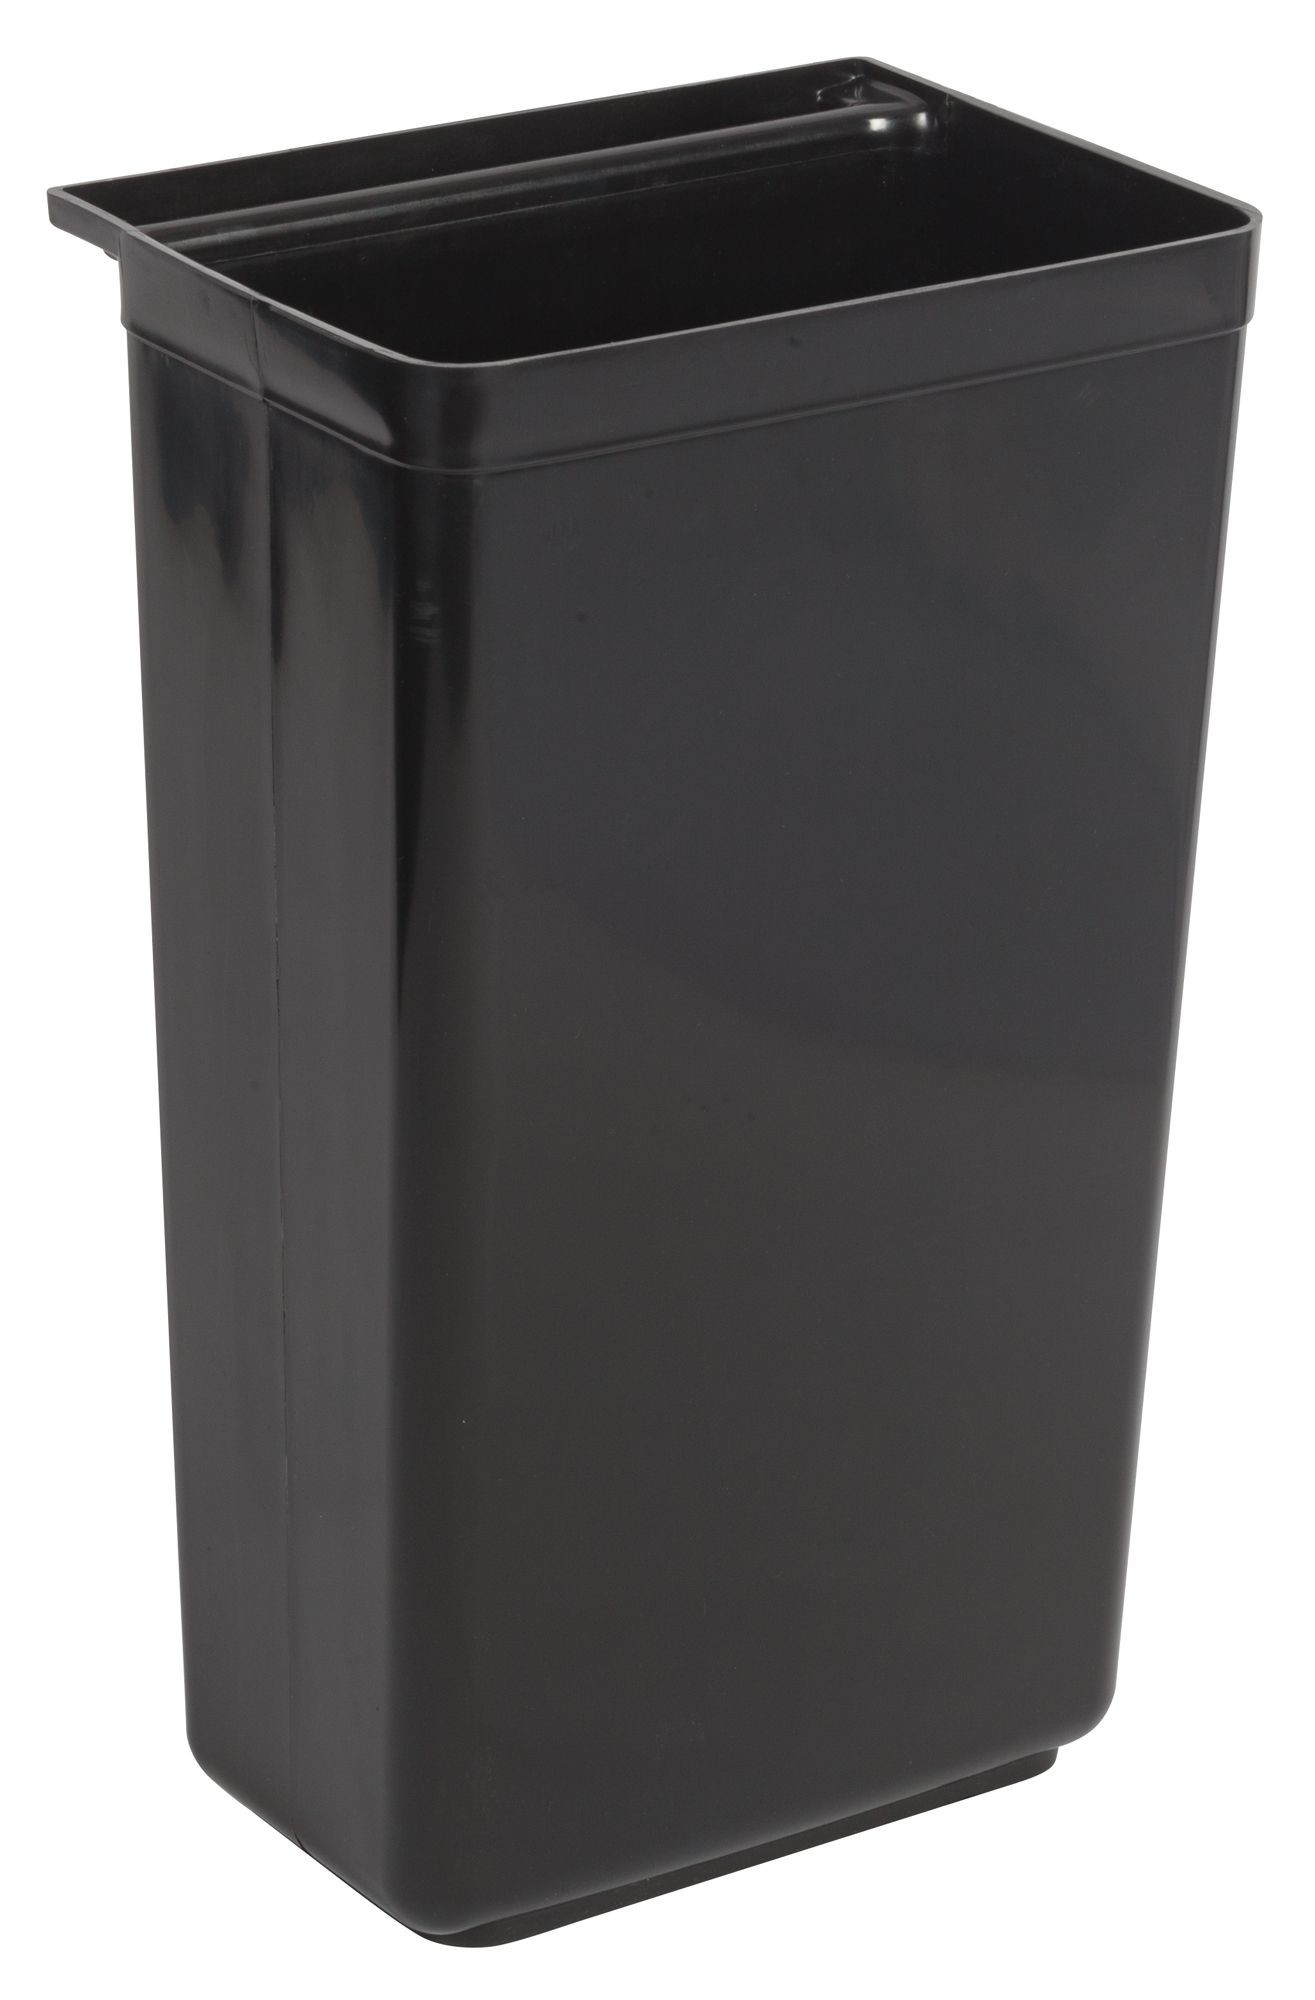 Silverware Bin For Uc-35G/K Uc-40G/K